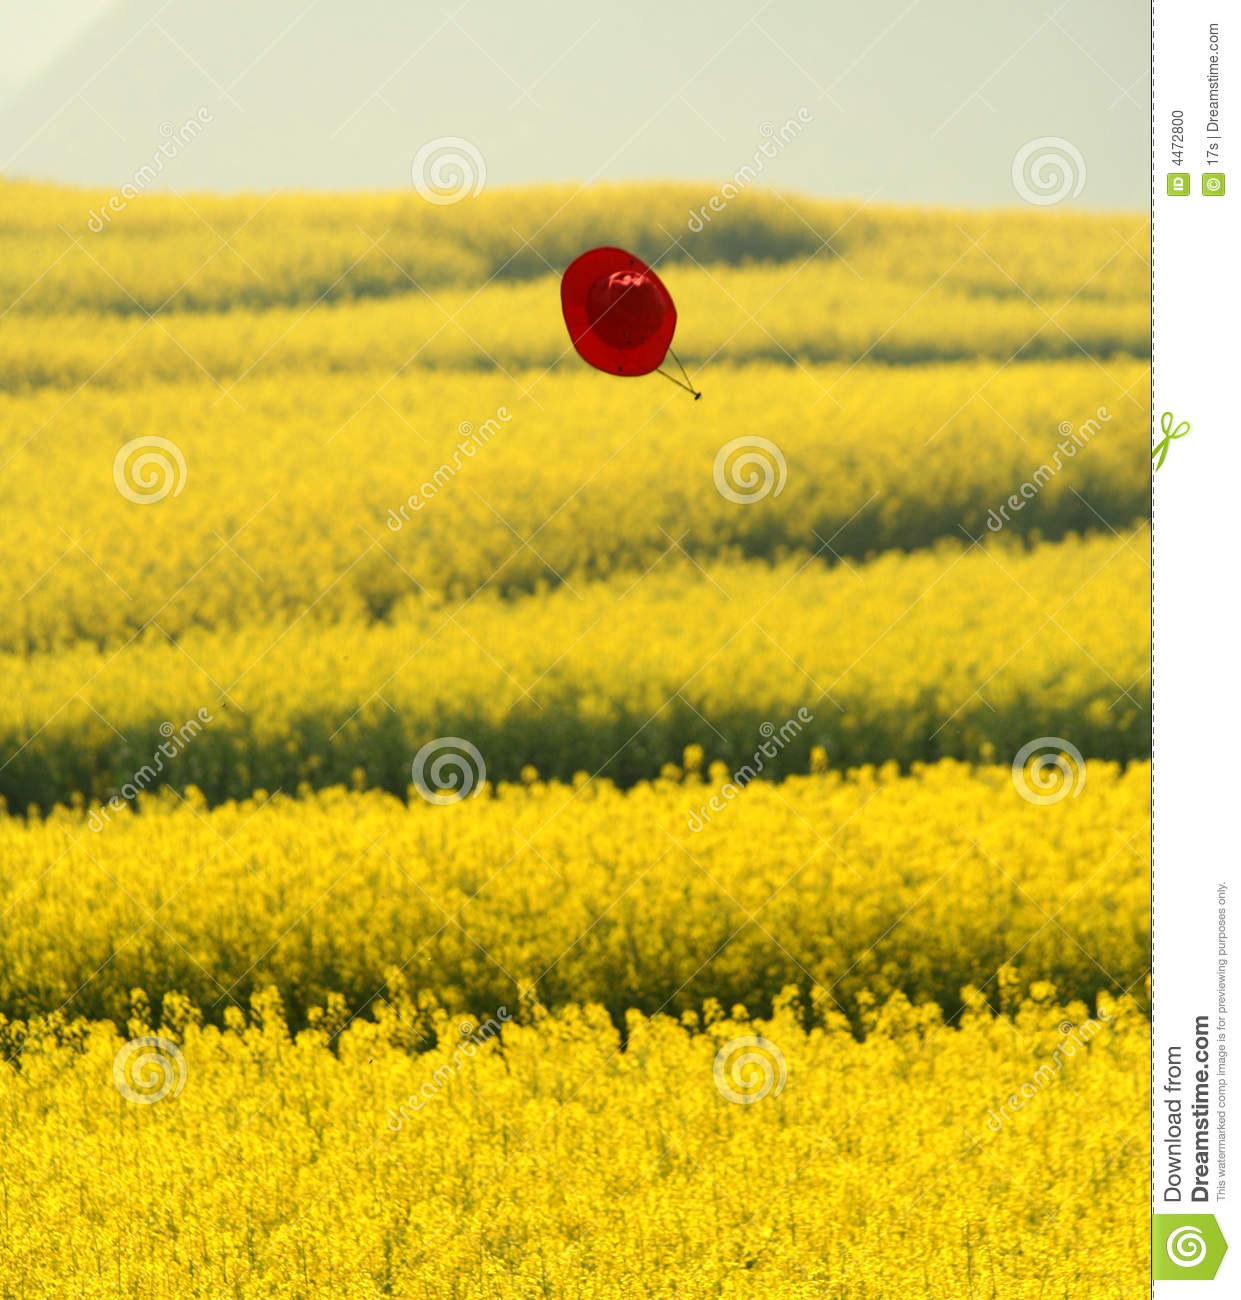 Flying hat over flowers field